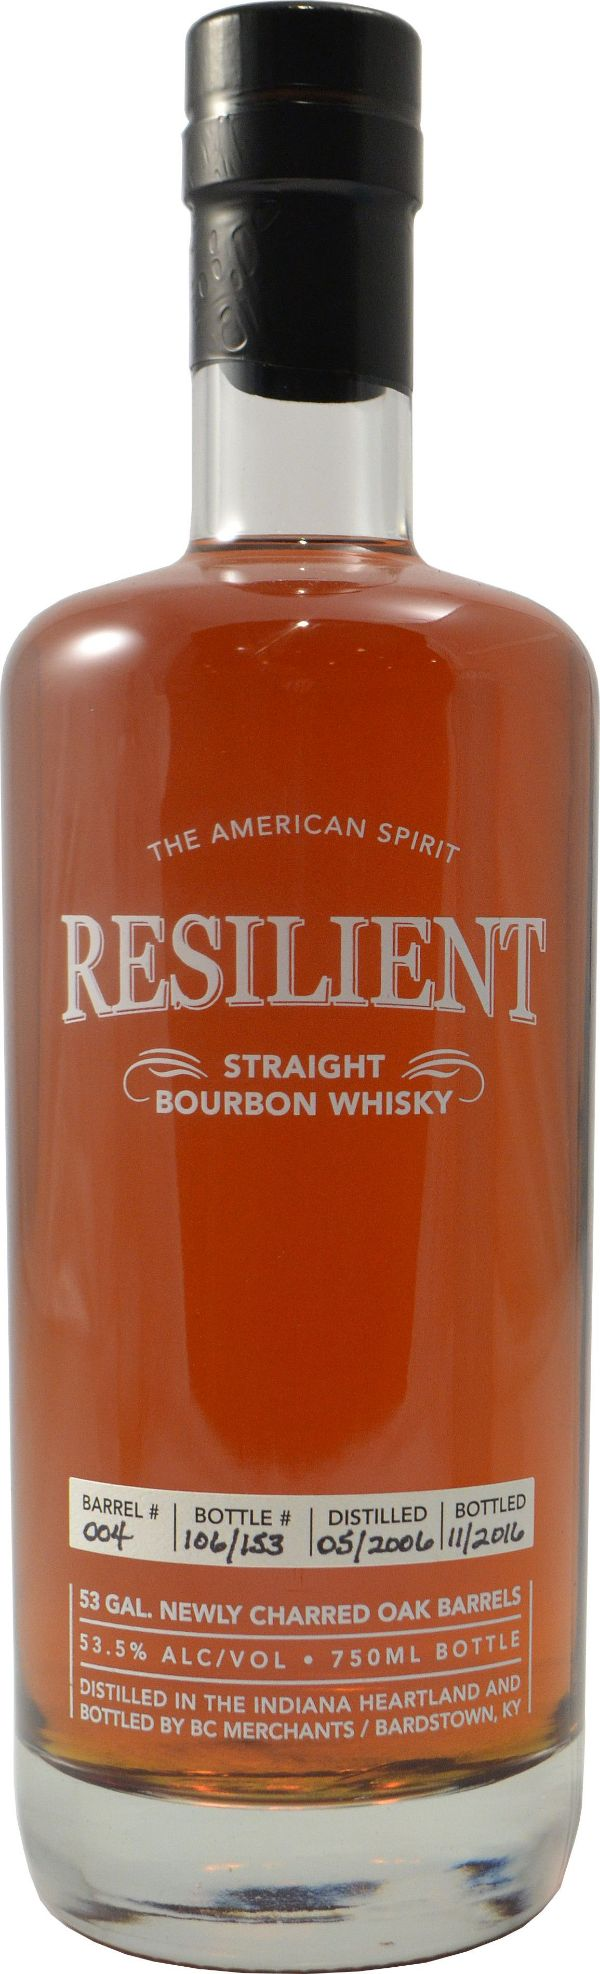 Resilient 14 Yr Straight Bourbon